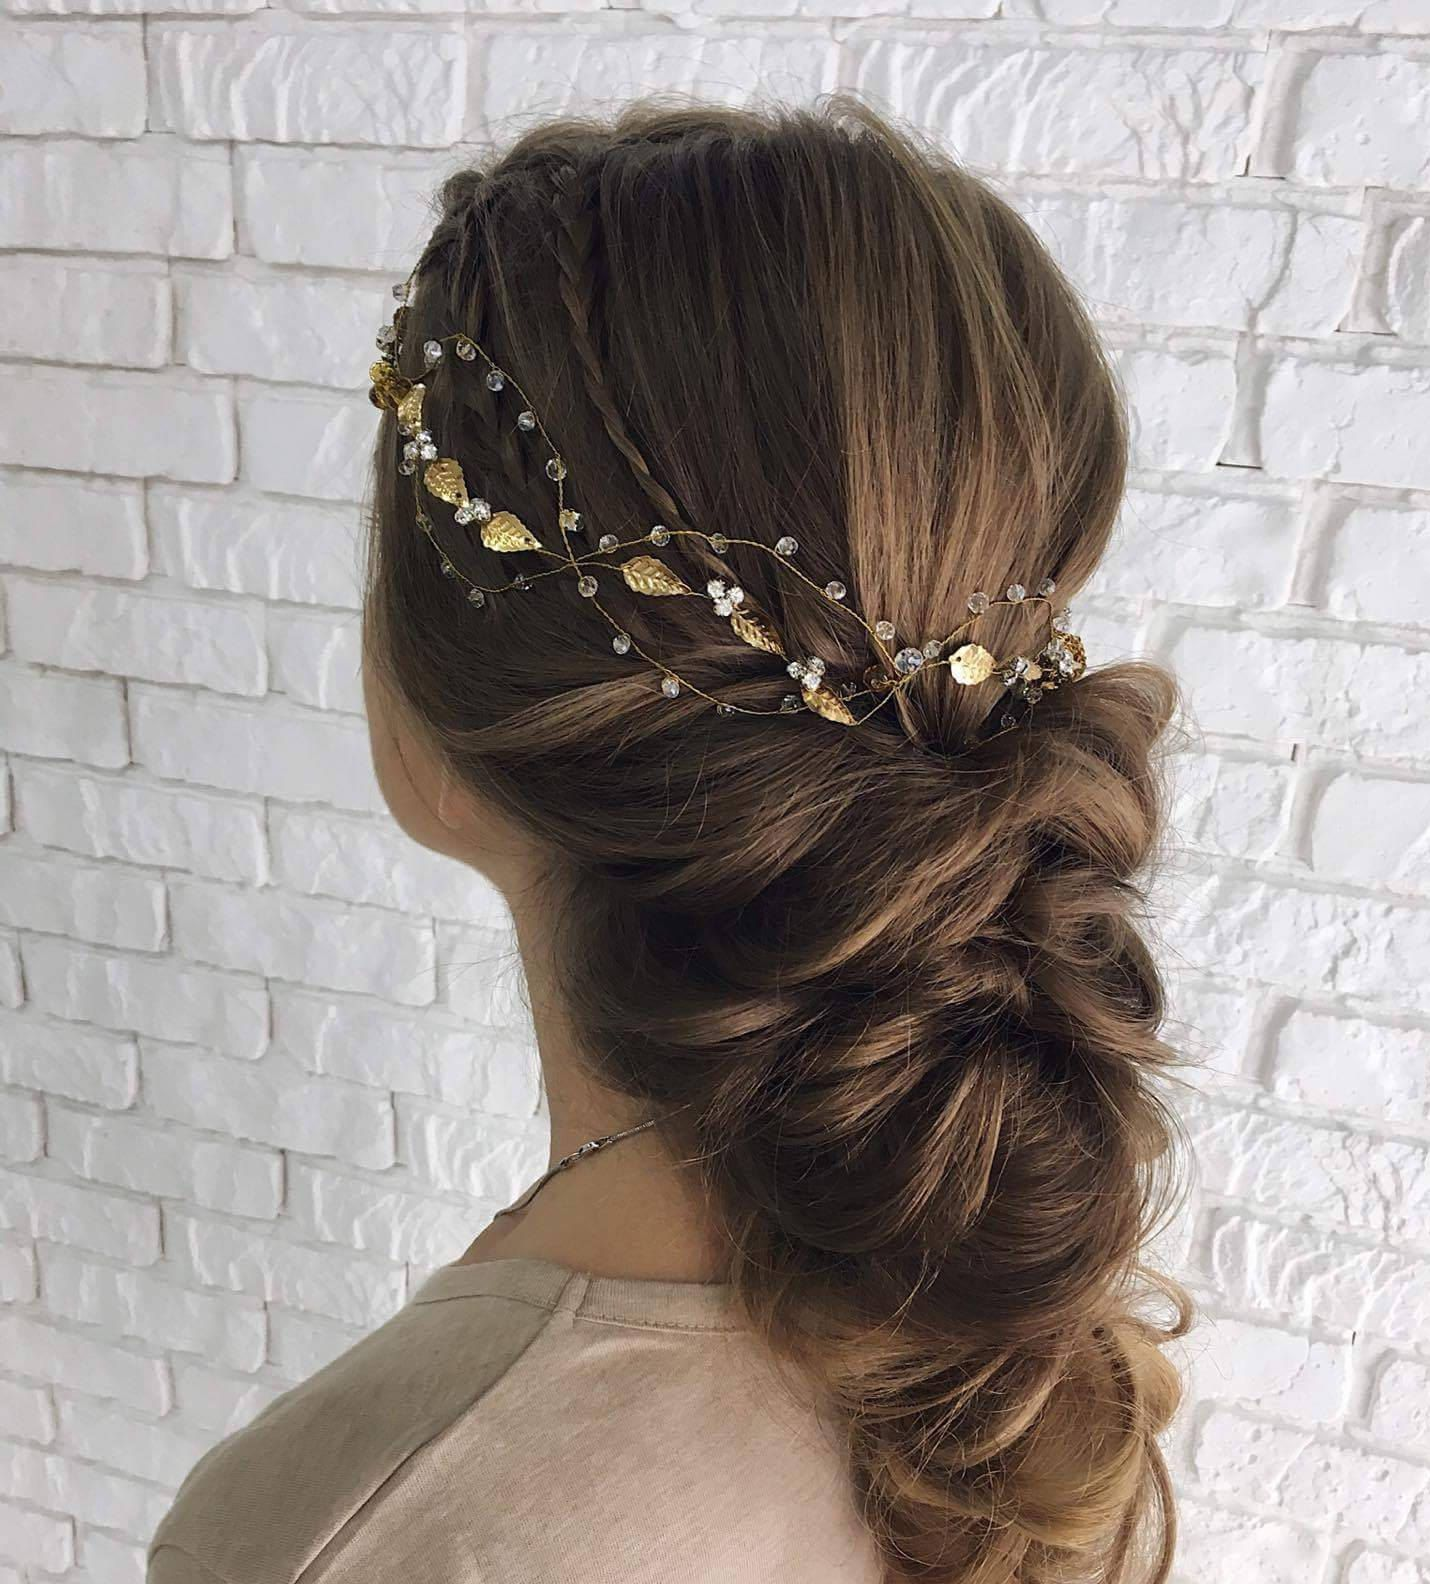 Beauty beast wedding inspired Gold leaf hair chain bridal crown Autumn wedding Prom hair jewelry Valentine day gift her women wife sister #hairchains